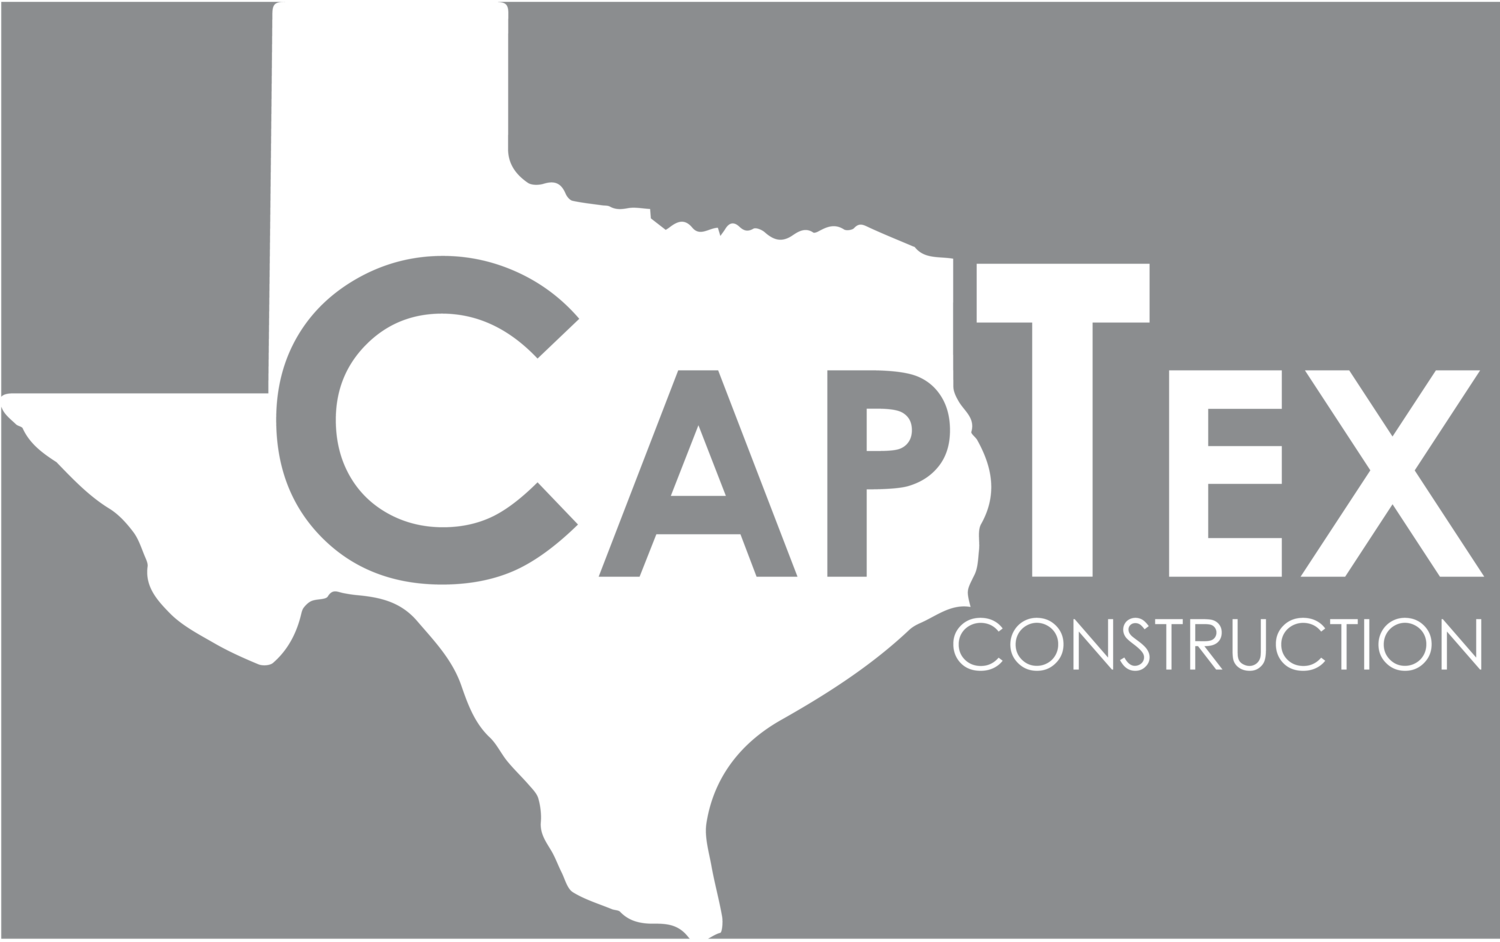 CapTex Construction